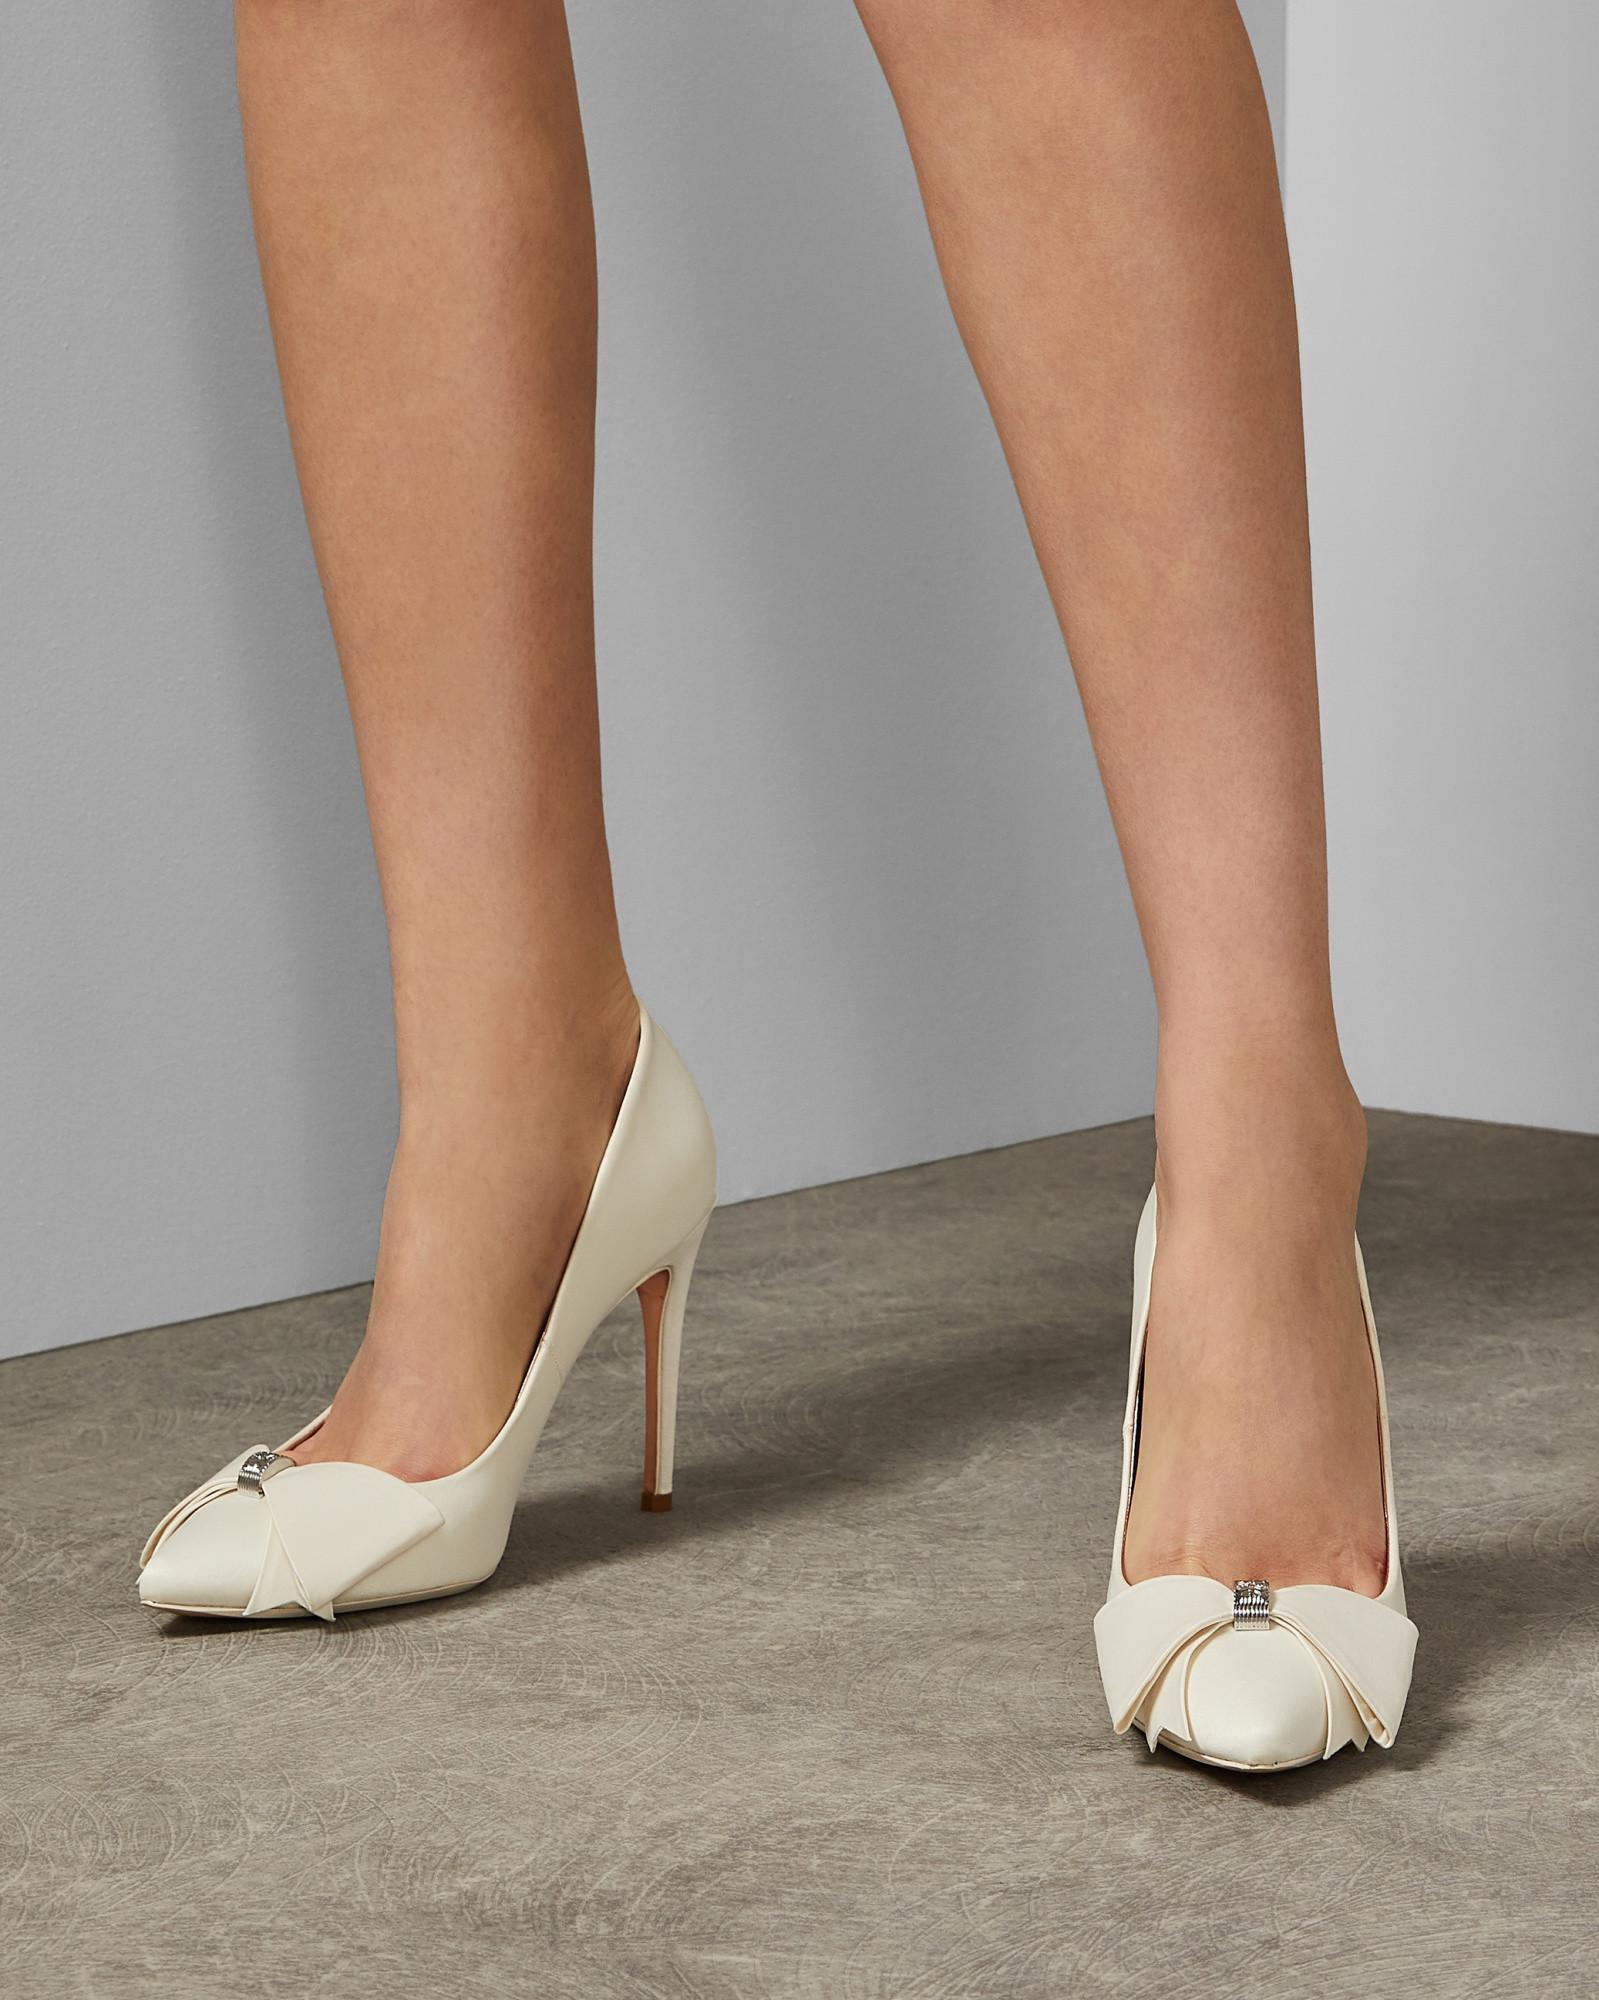 0c22bb6ed Ted Baker Bow Detail Courts in White - Lyst